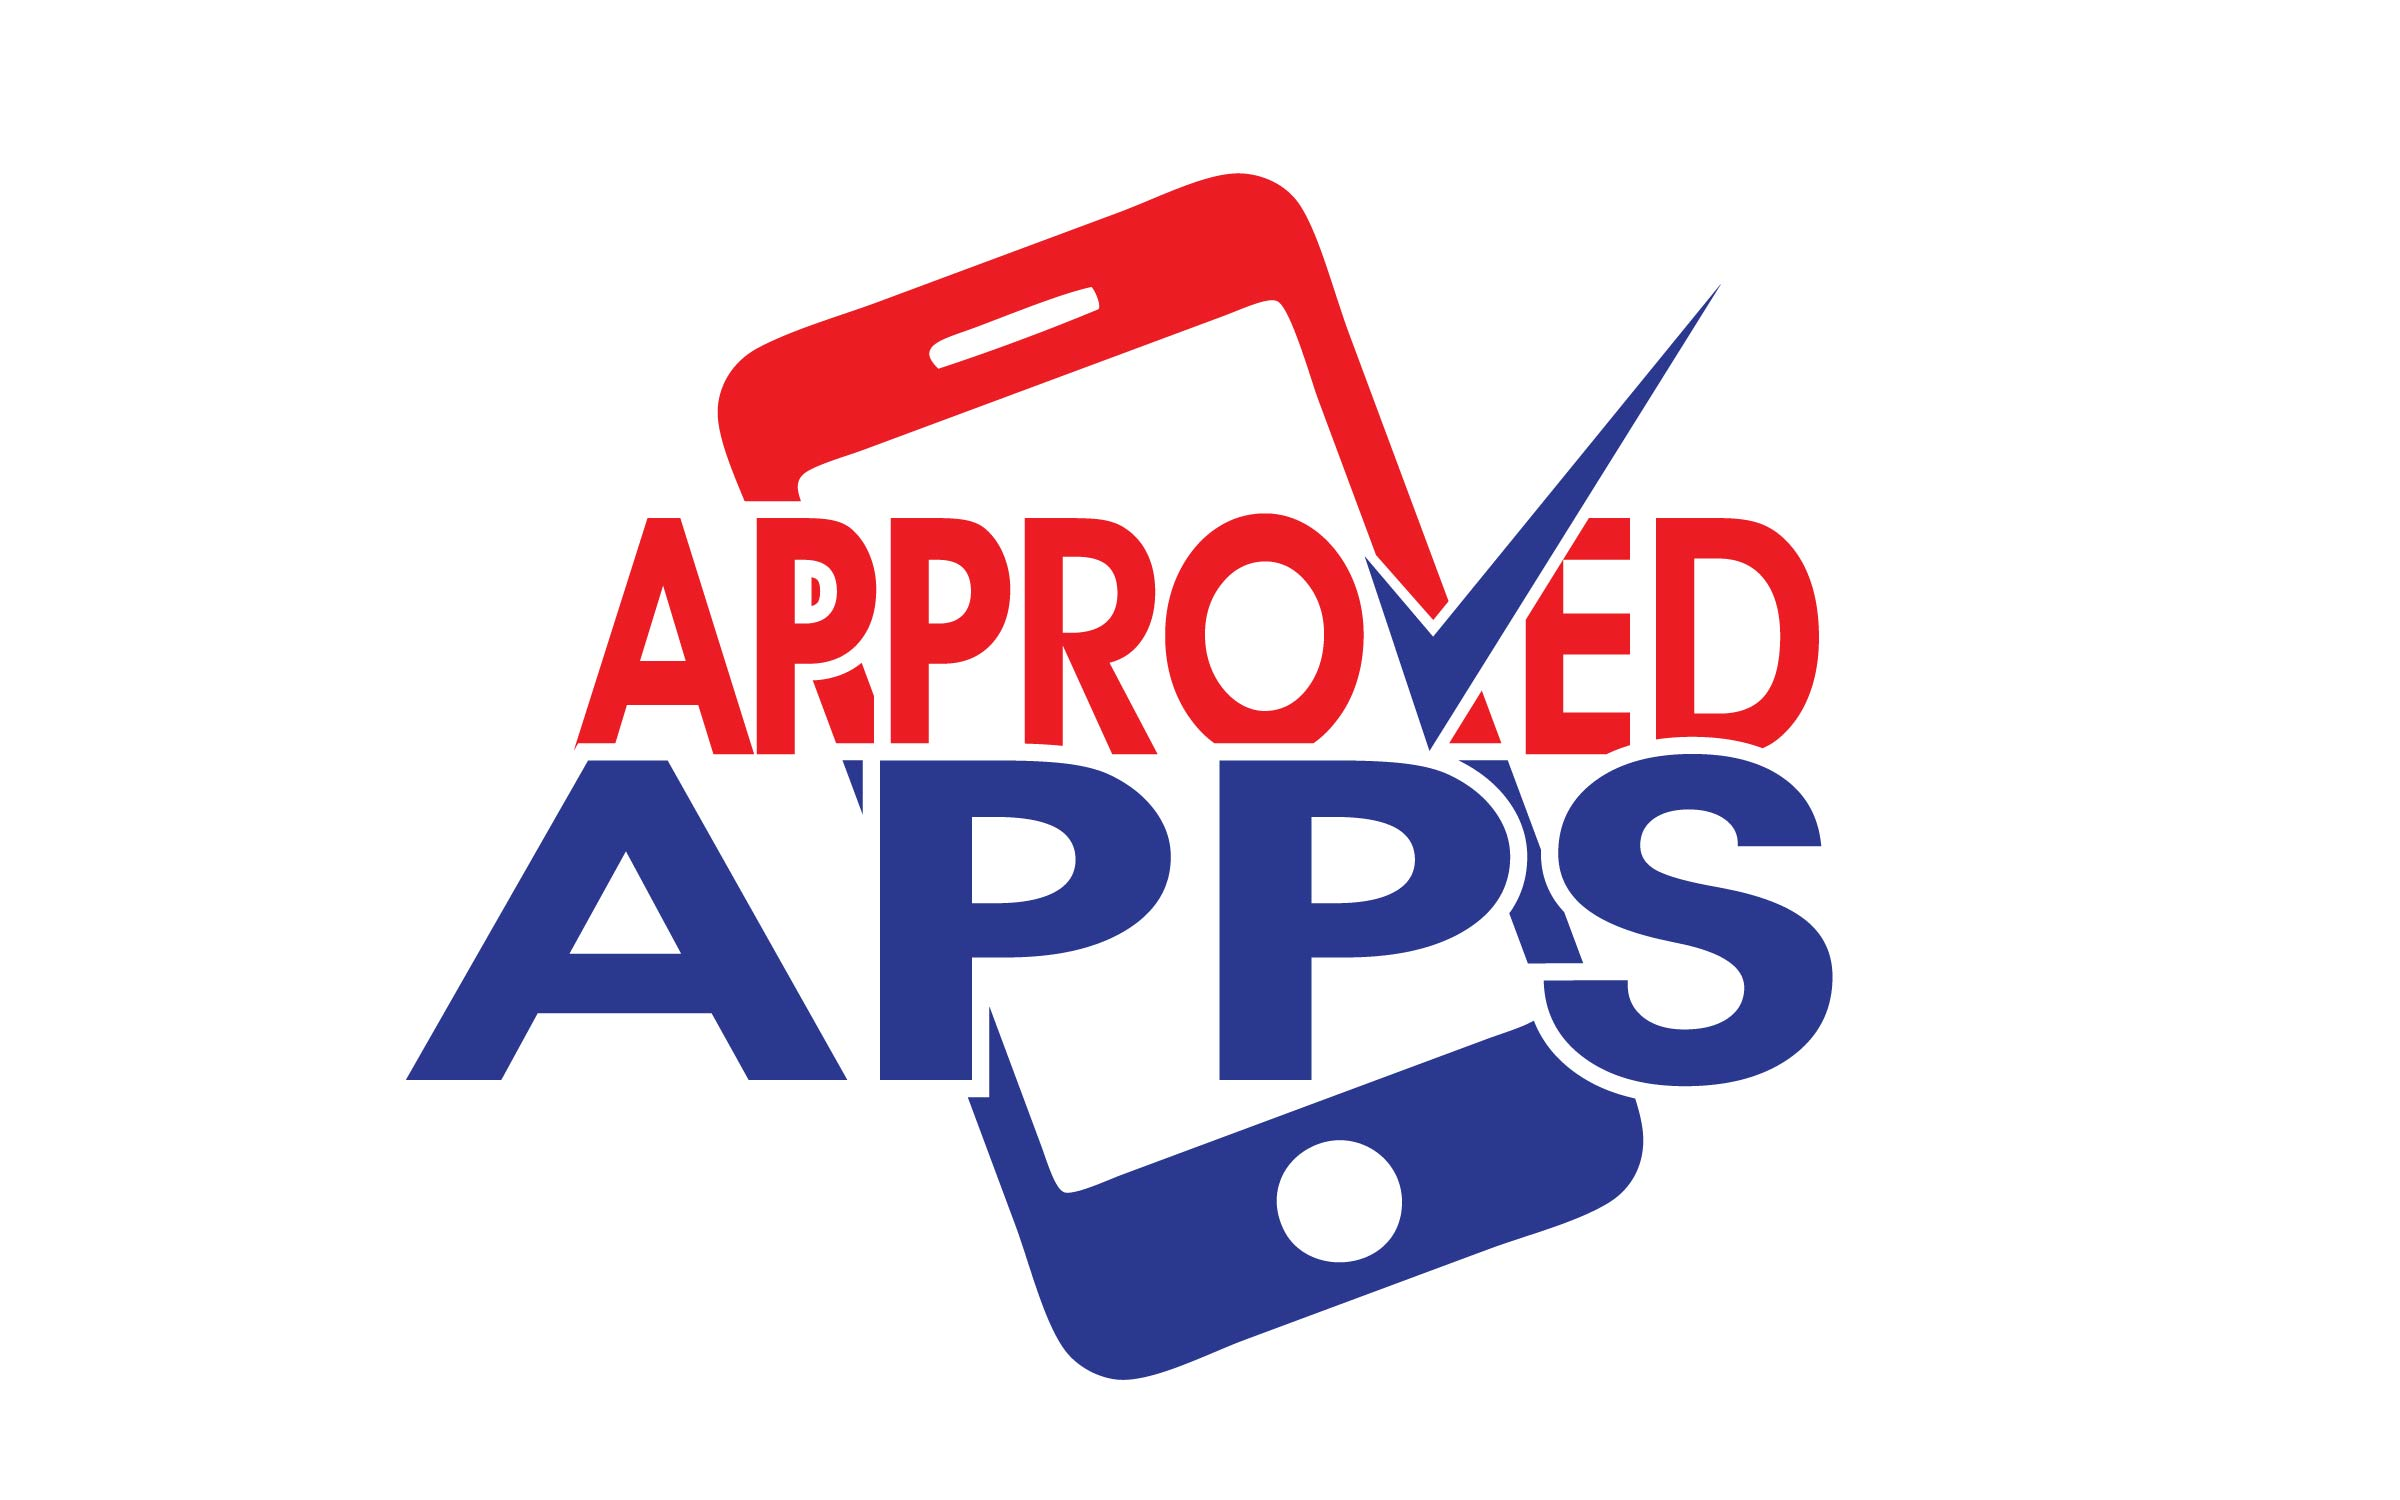 Approvedapps